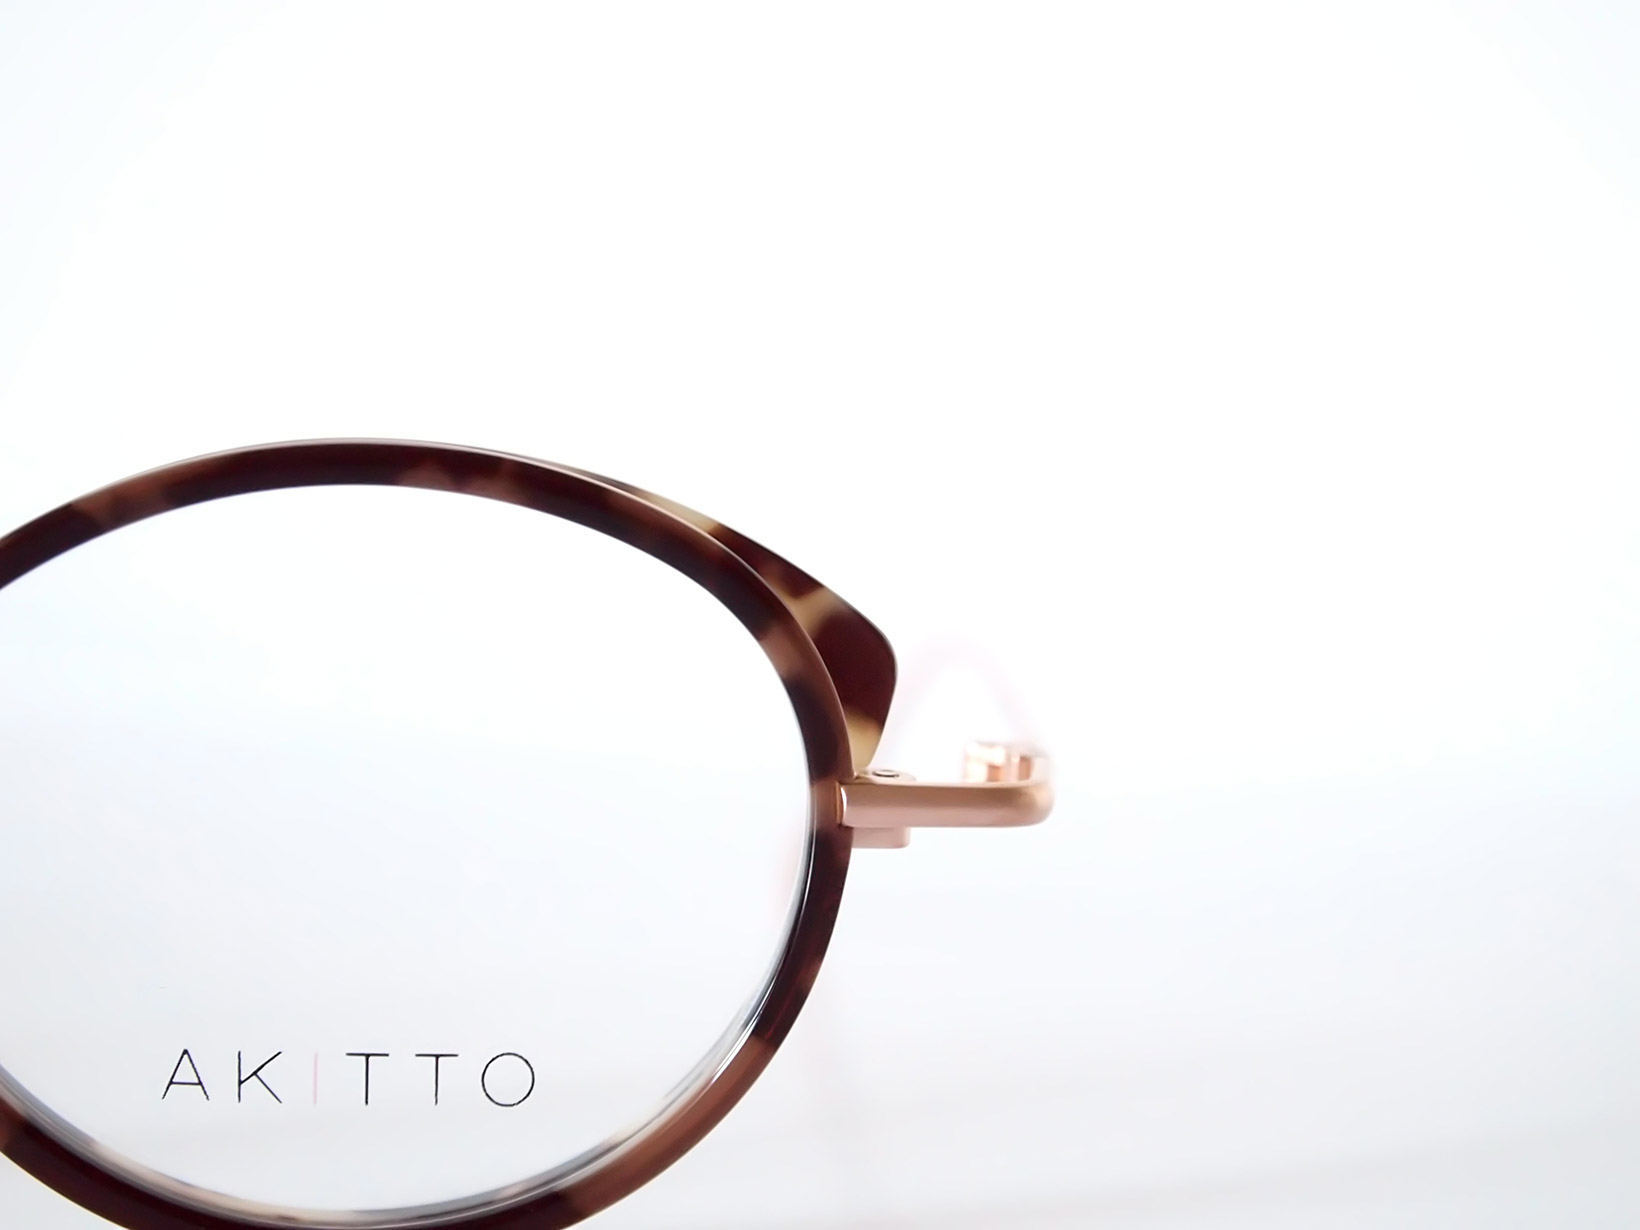 AKITTO 2018-1st pin3 size:46□22 material:titanium+acetate price:42,000-(+tax)